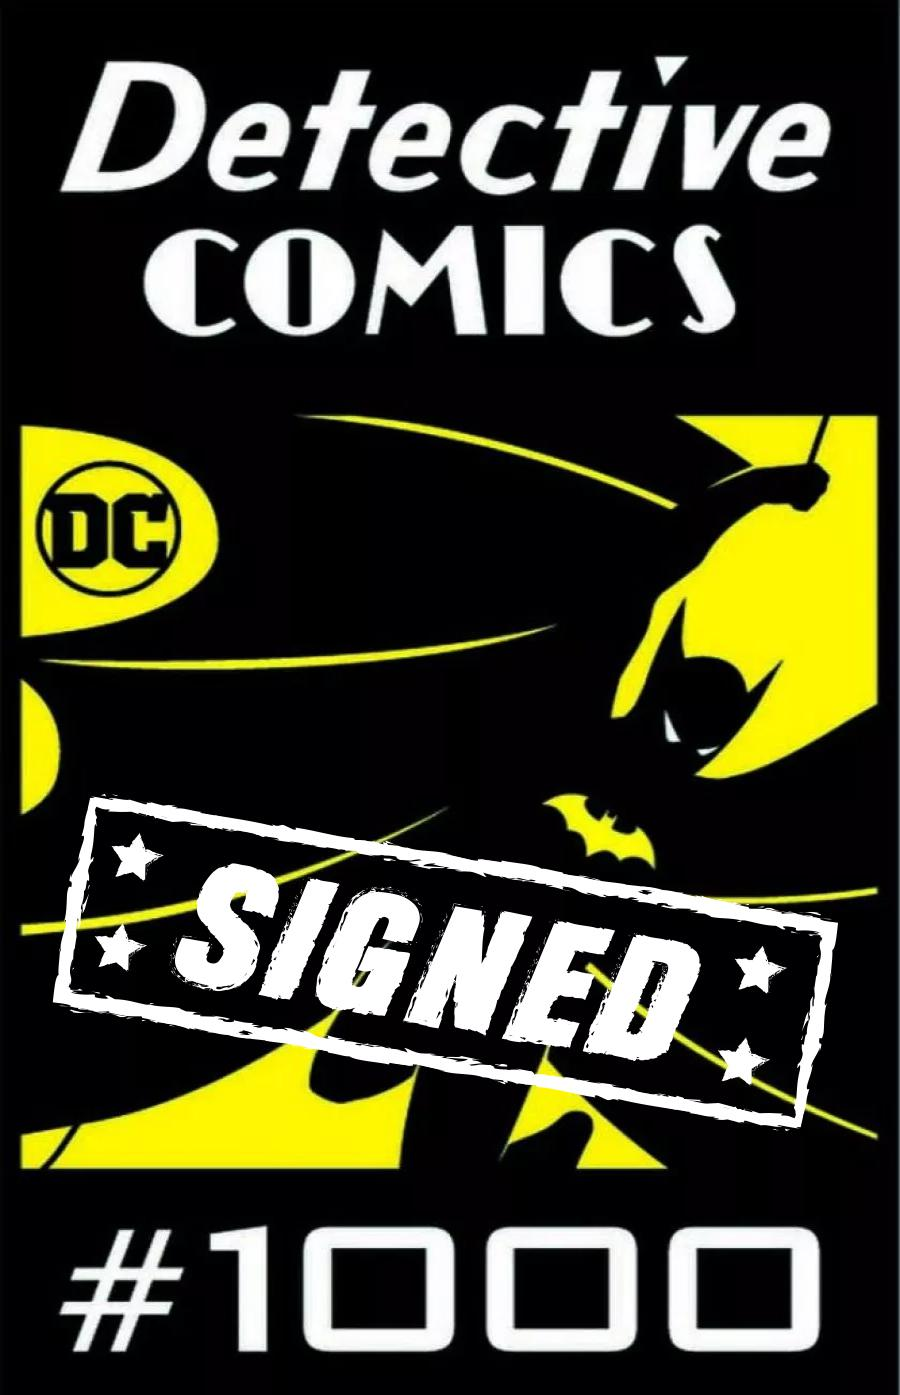 Detective Comics Vol 2 #1000 Cover R DF Andy Kubert Variant Cover Signed By Andy Kubert